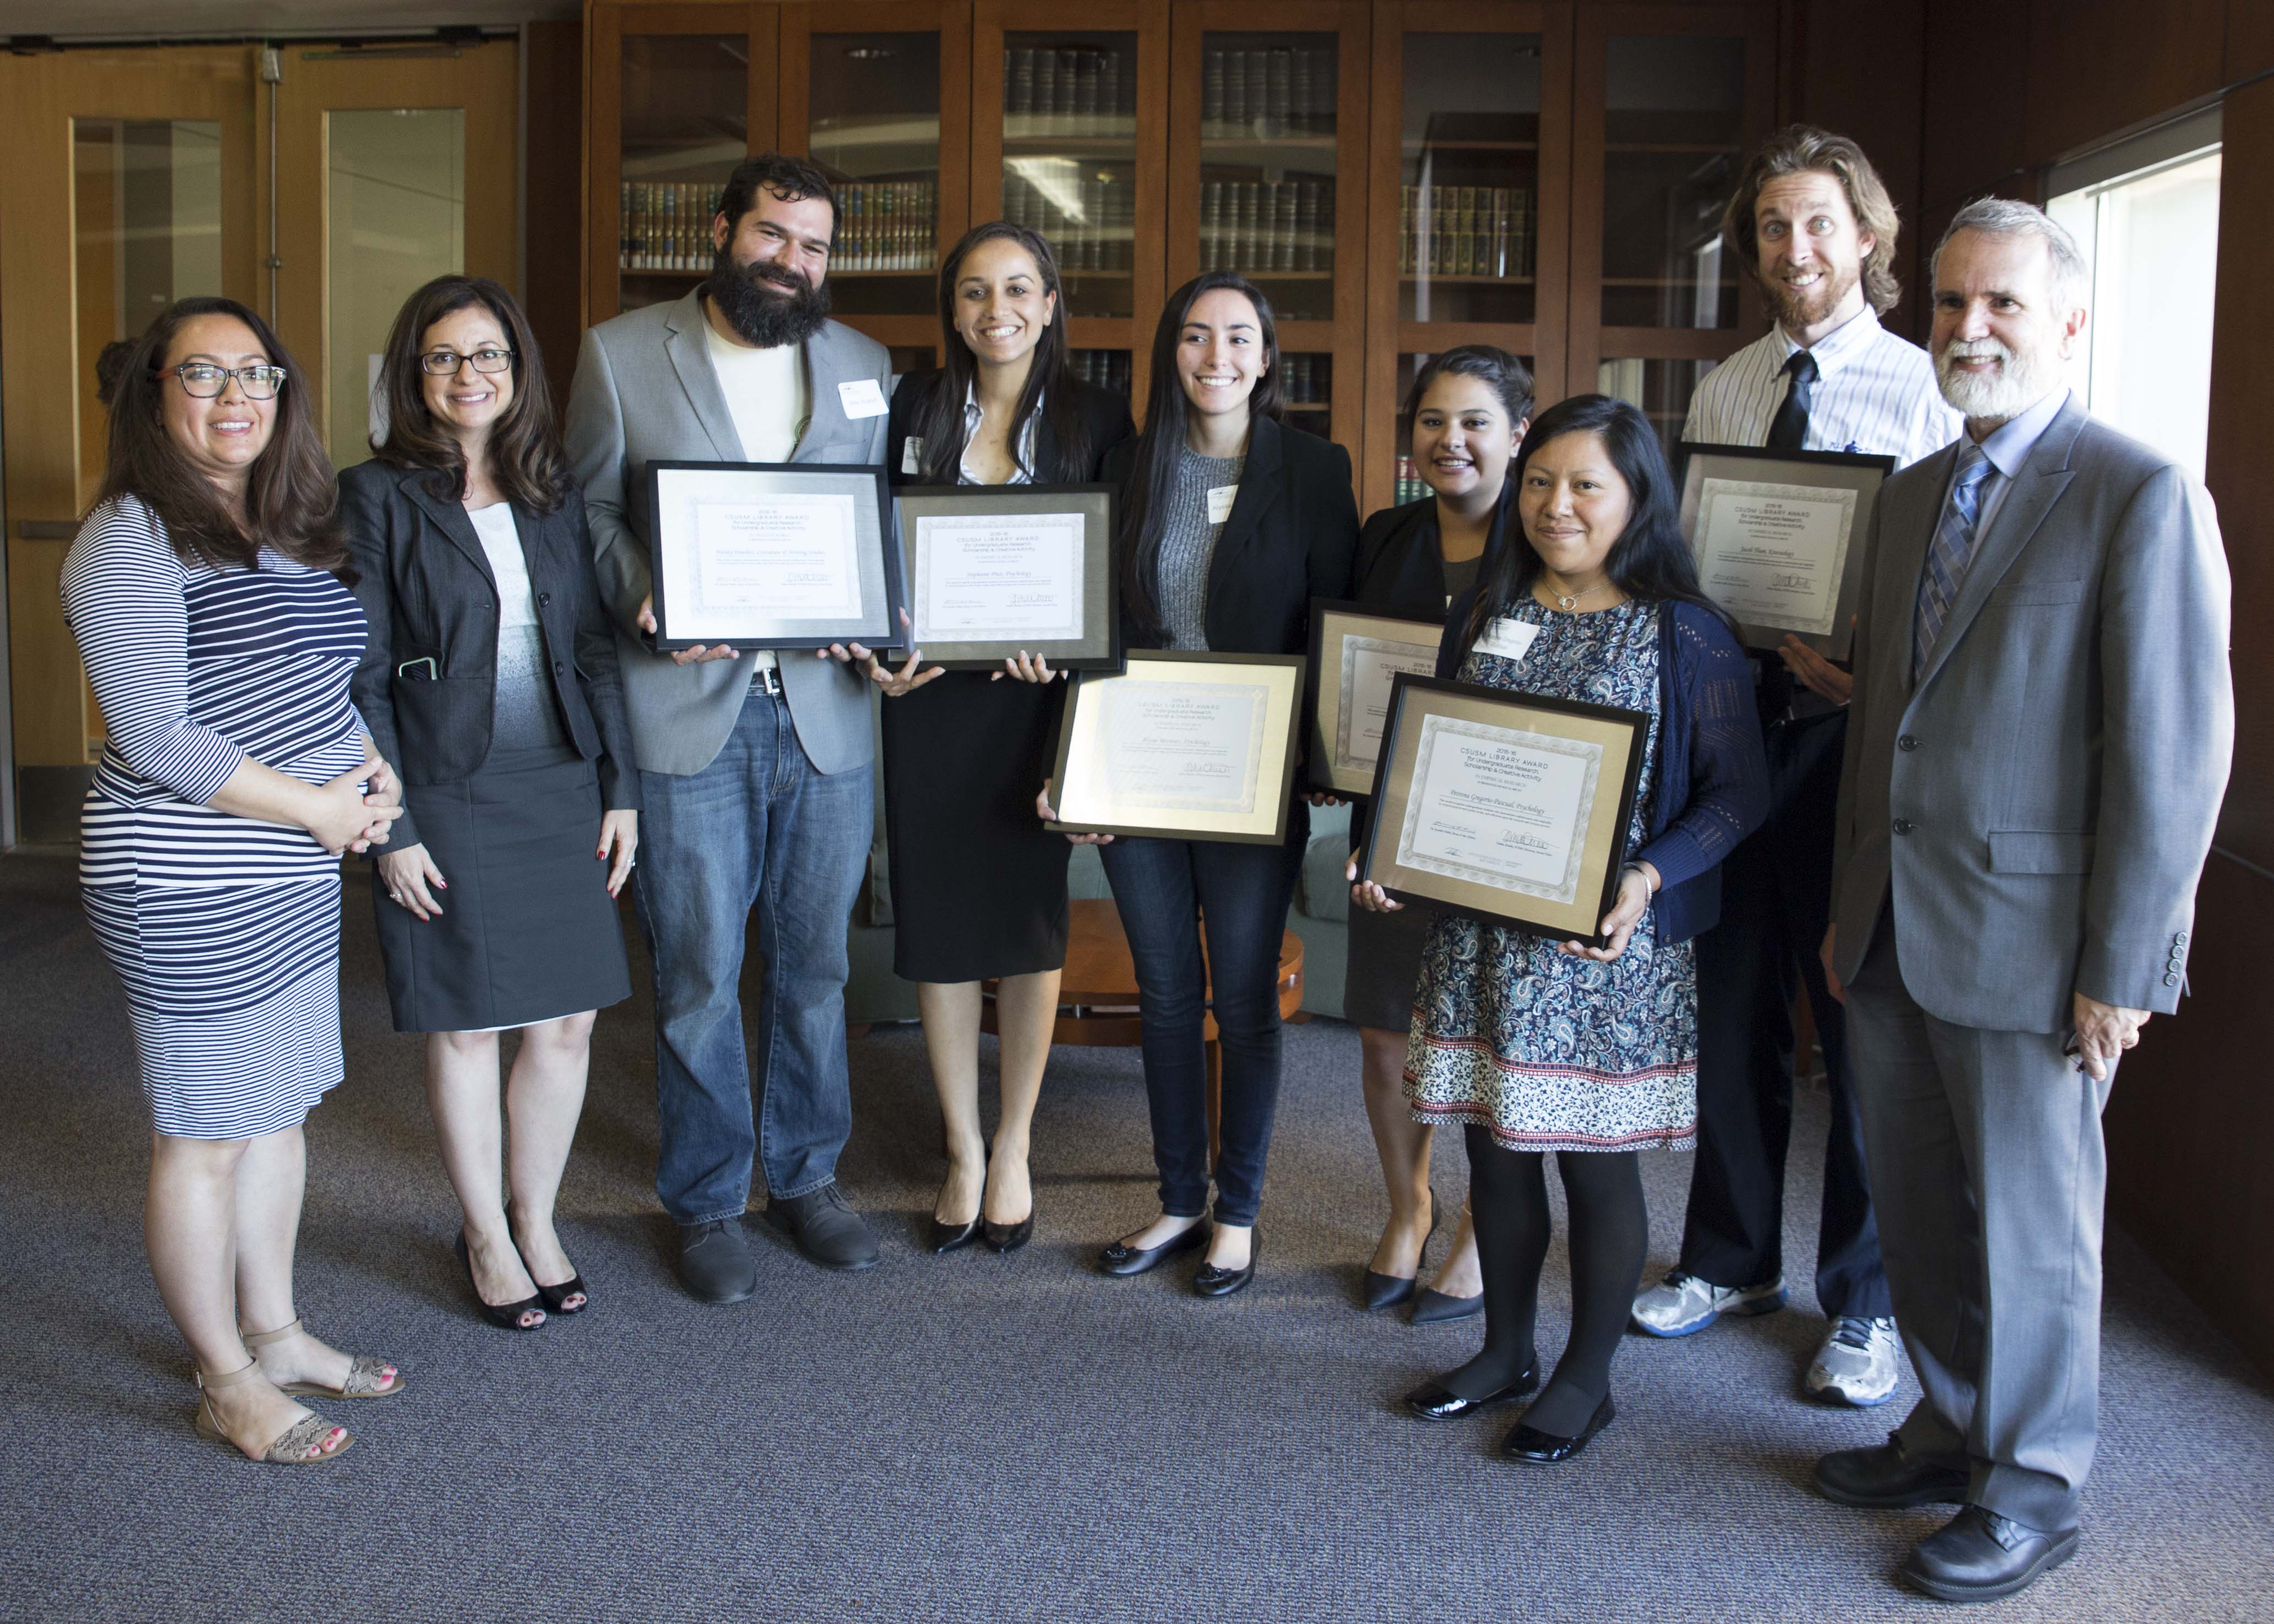 Winners of the 2015-16 CSUSM Library Award for Undergraduate Research, Scholarship and Creative Activity